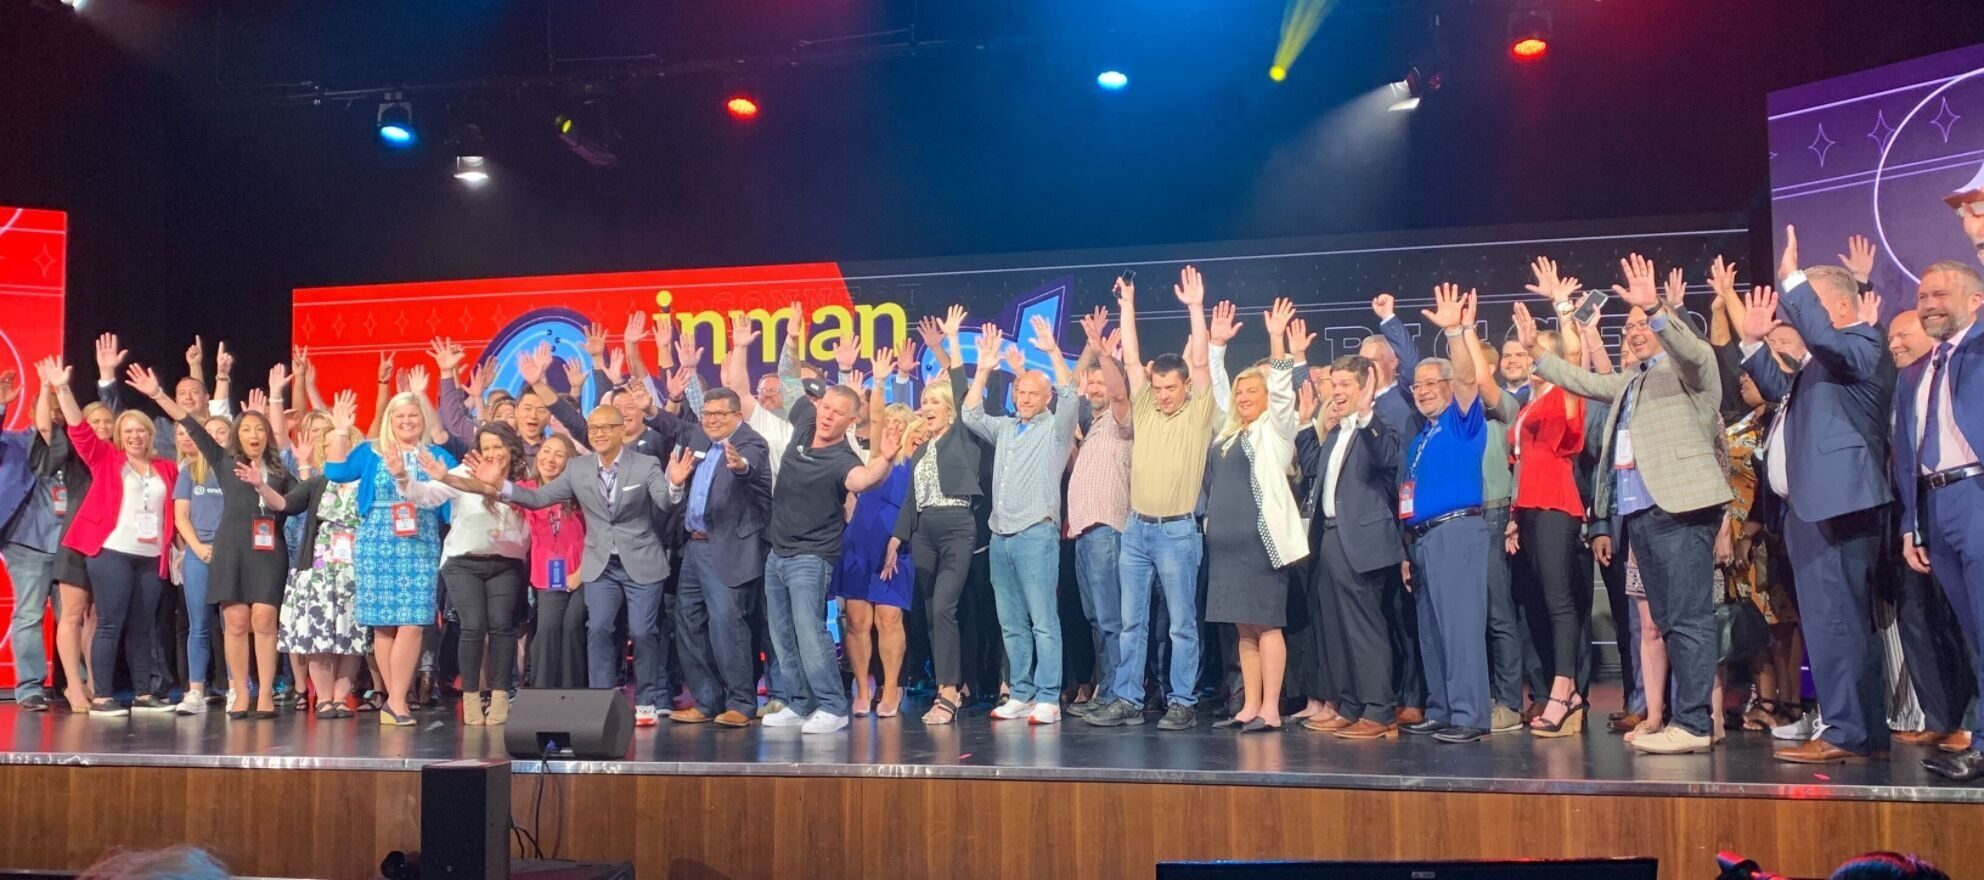 WATCH: The 2019 Inman Innovator Awards